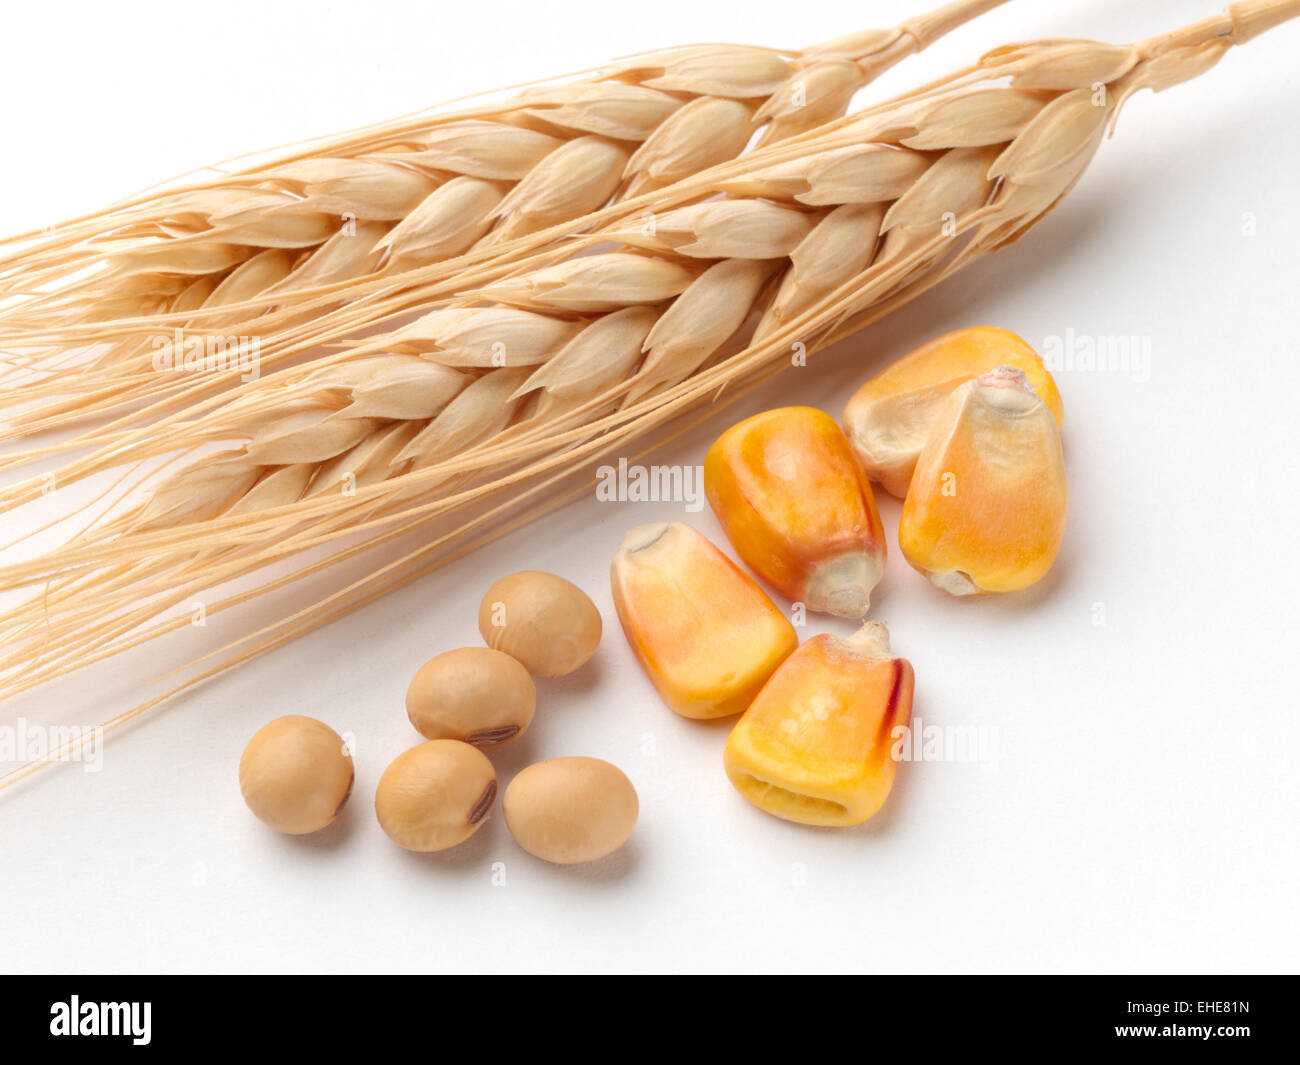 Sources of ethanol - Stock Image